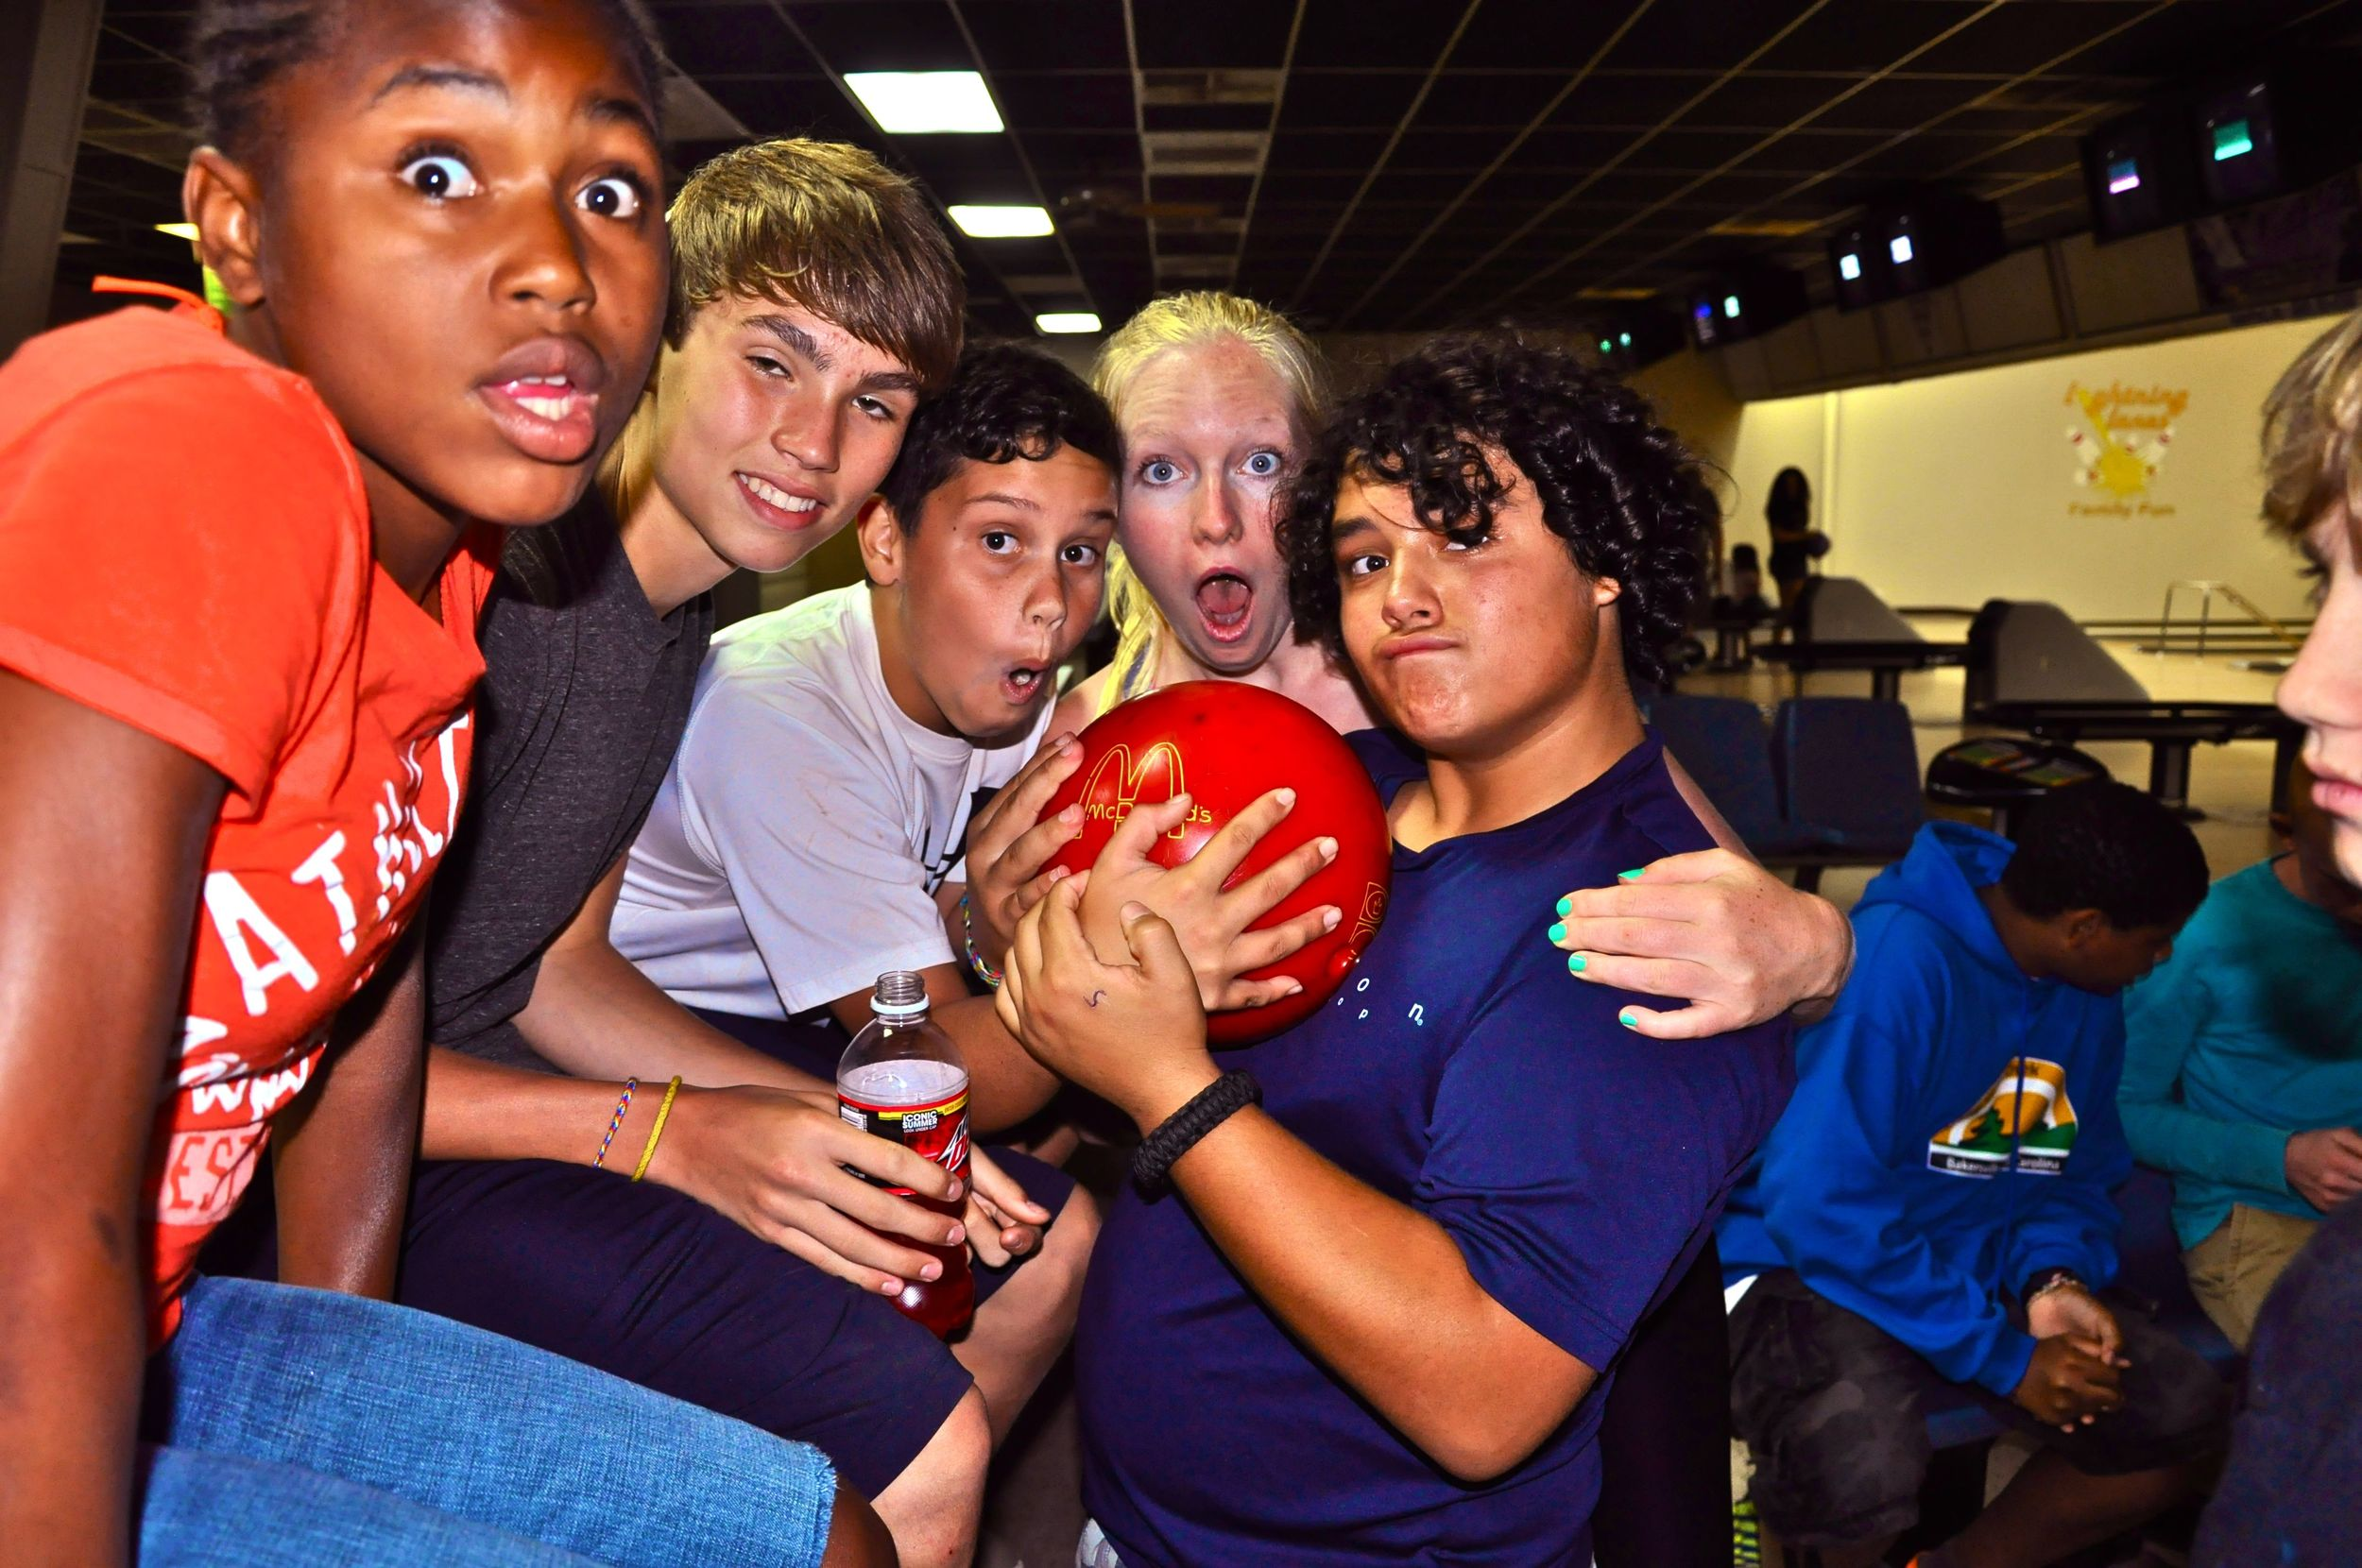 22woah-look-at-that-ball22-cynia-bruce-ethan-lilja-and-travis-have-some-fun-during-bowling.jpg